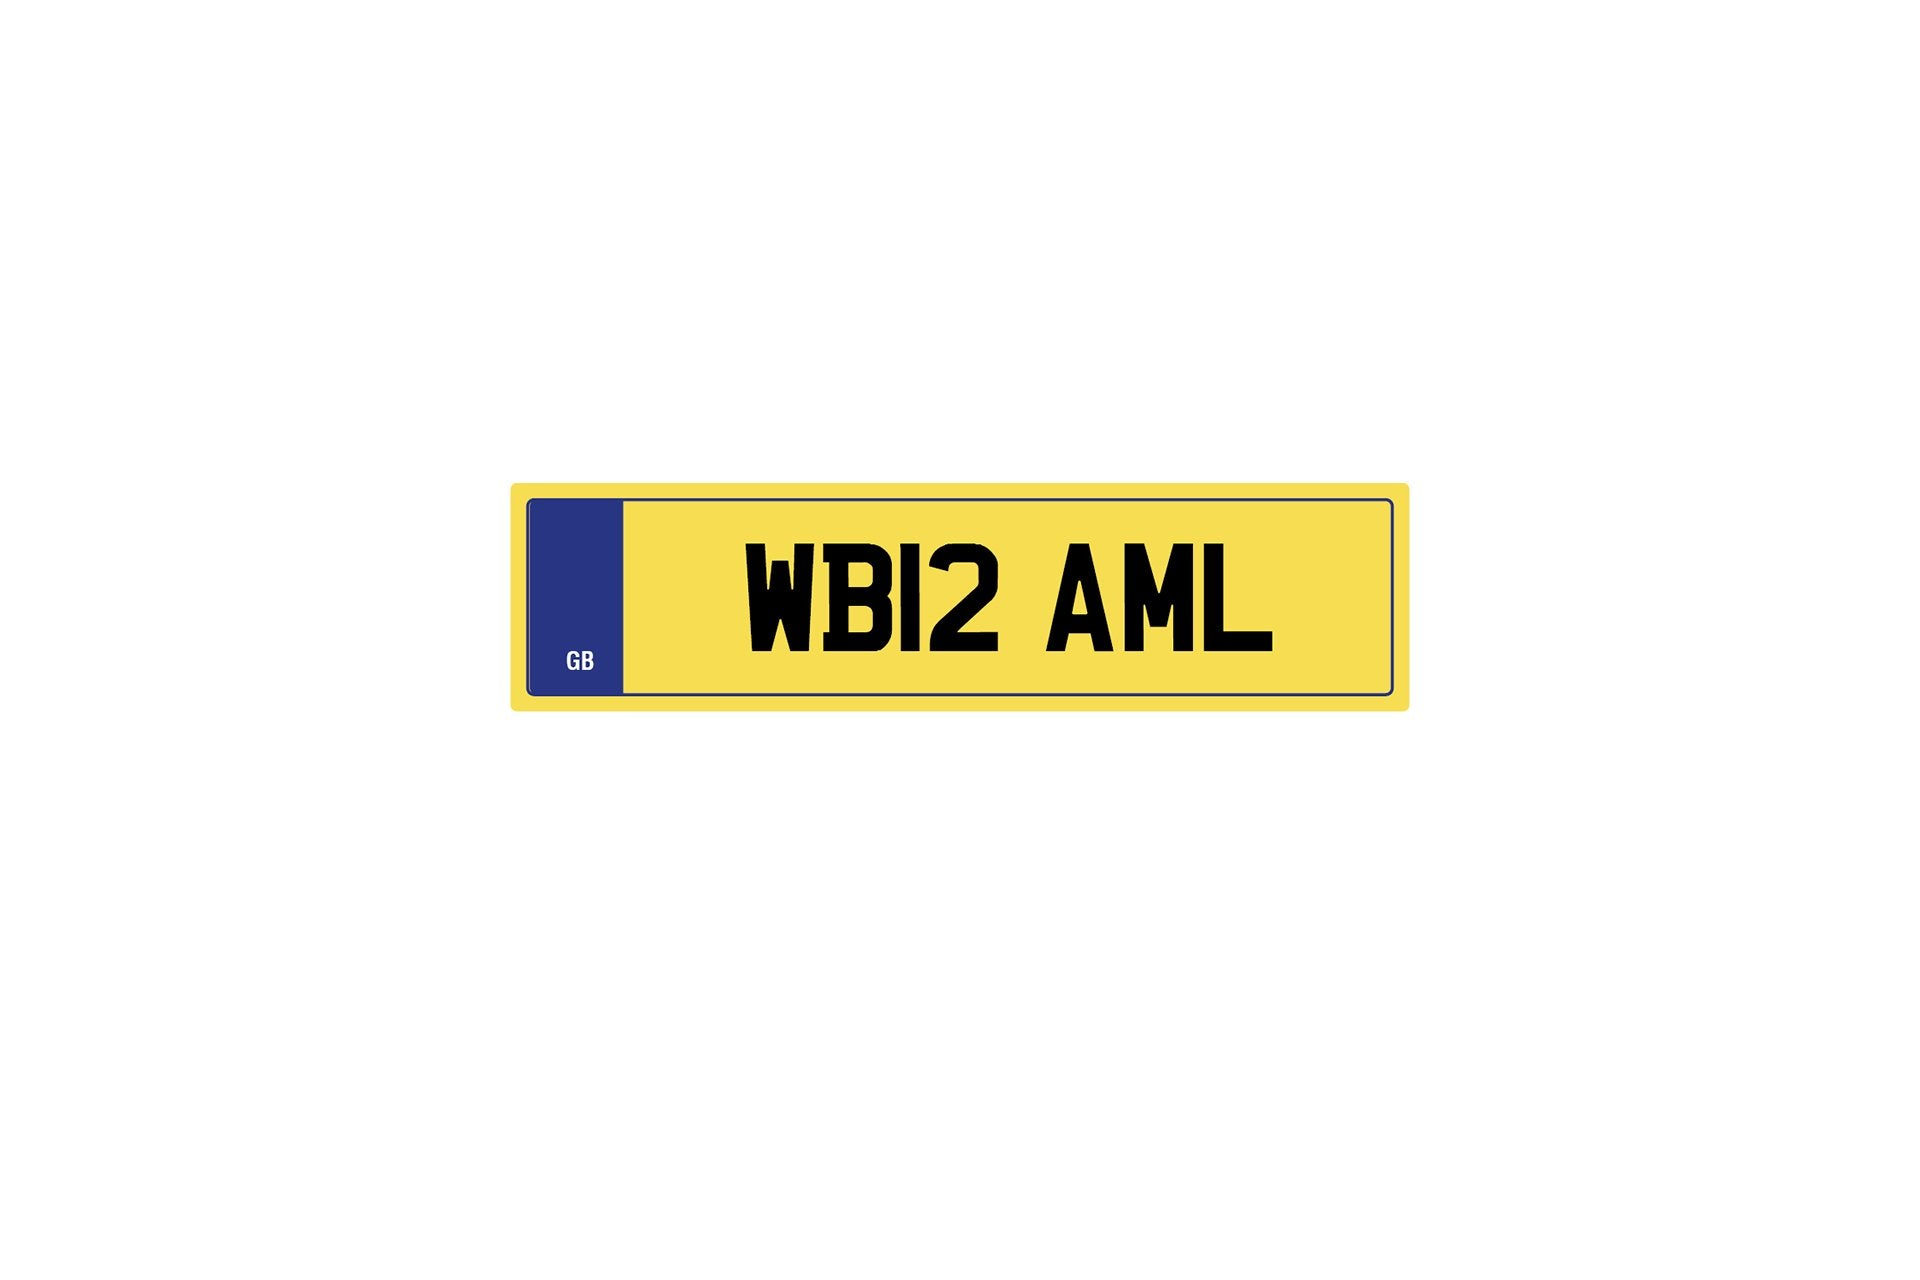 Private Plate Wb12 Aml by Kahn - Image 251